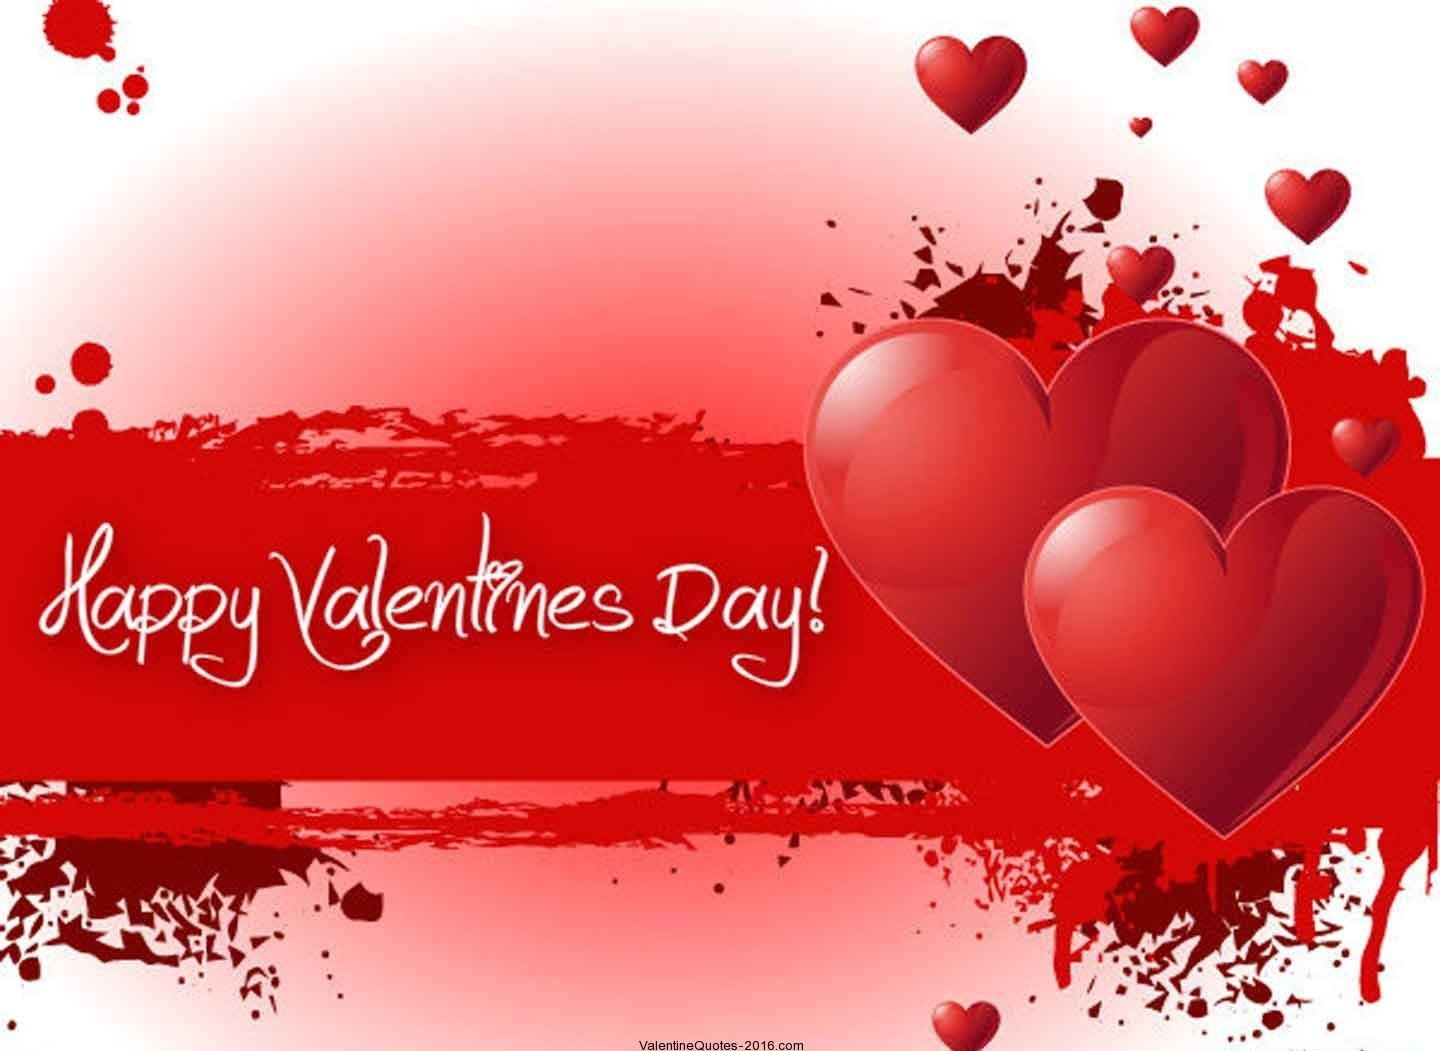 Charming Love Quotes for Valentine's Day